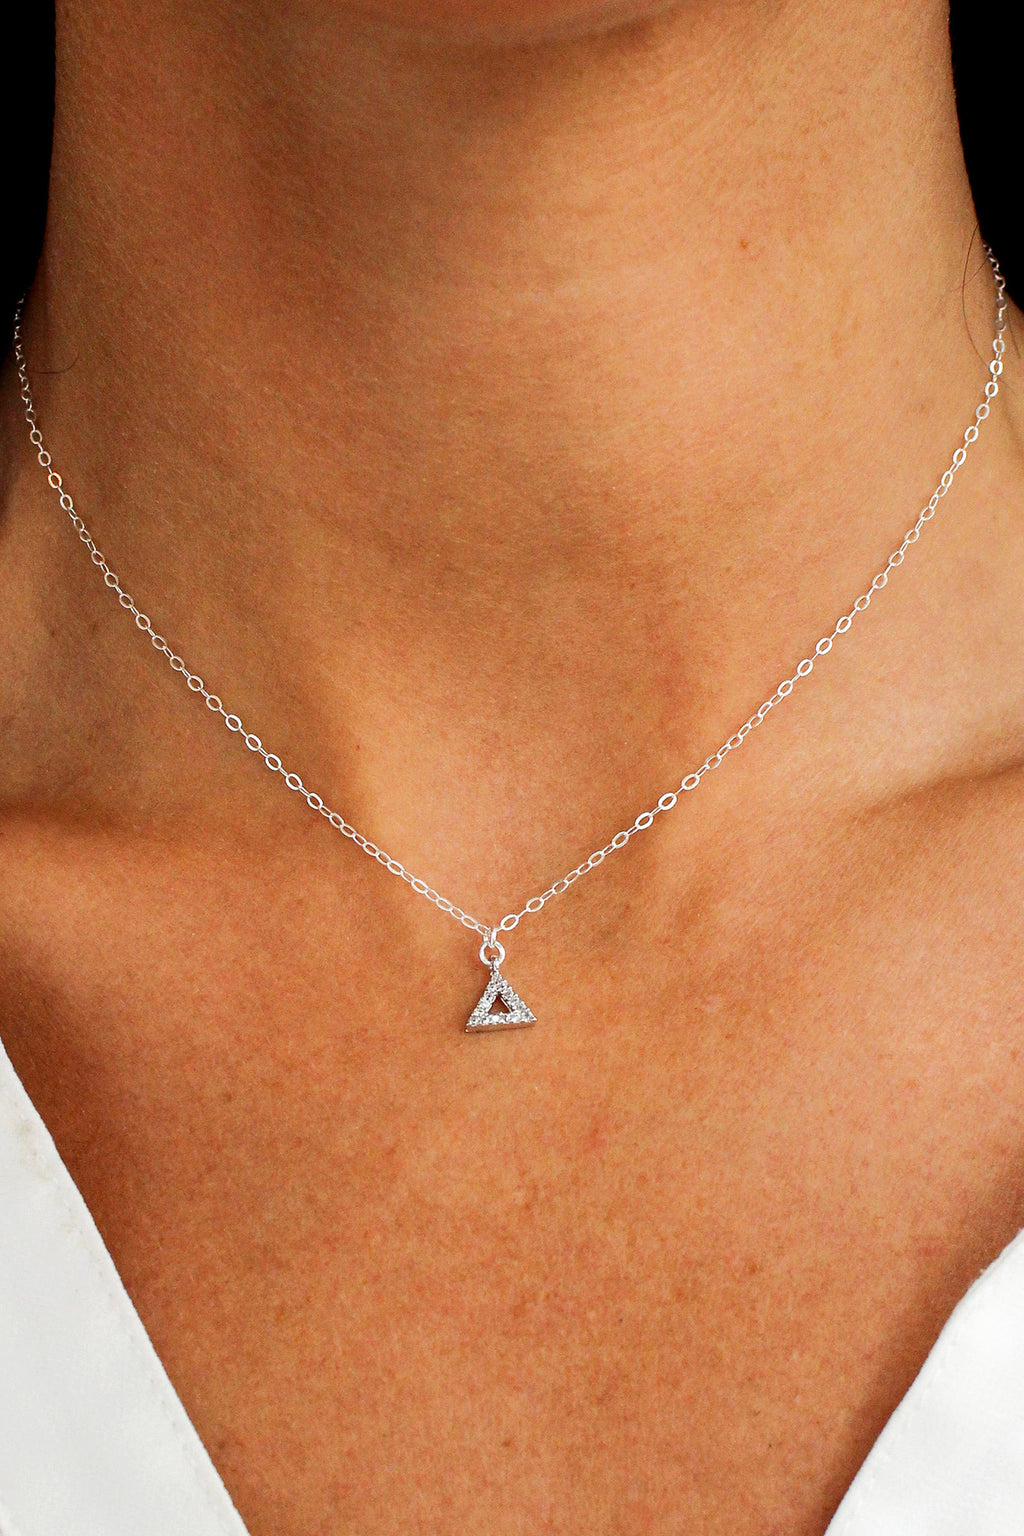 Shining Pyramid Necklace - Christine Elizabeth Jewelry - Glamour and Glow